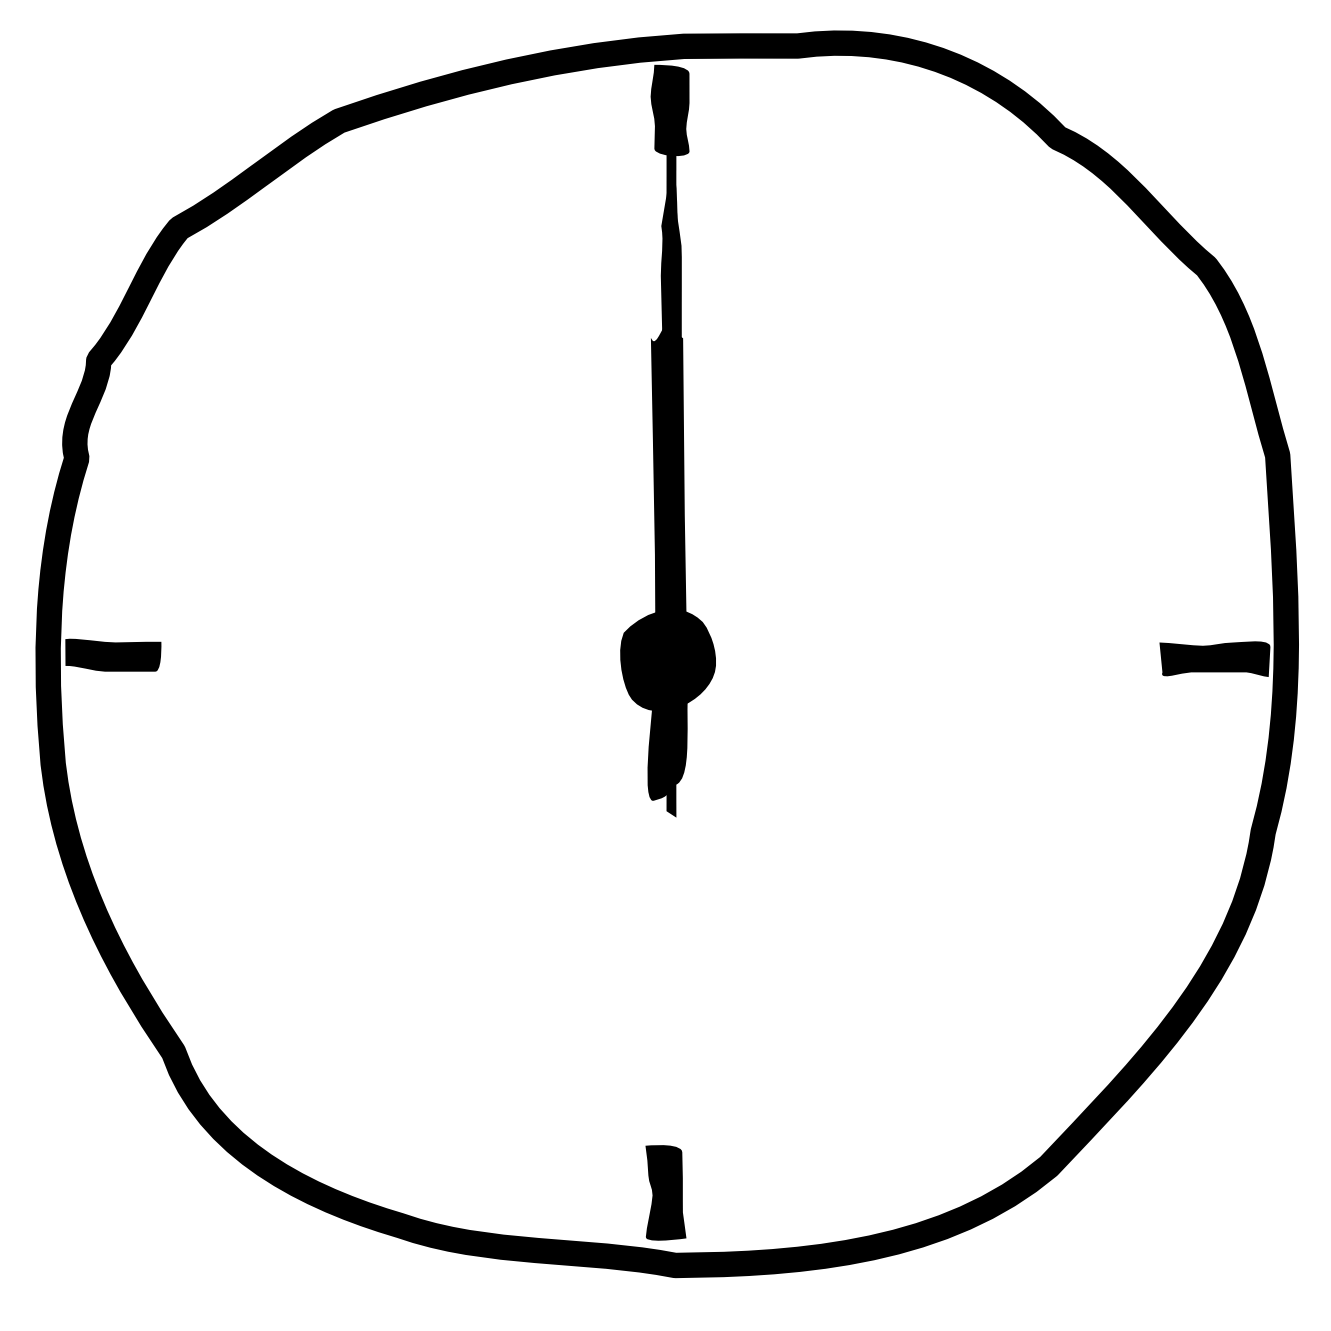 Cartoon Clock Face - ClipArt Best